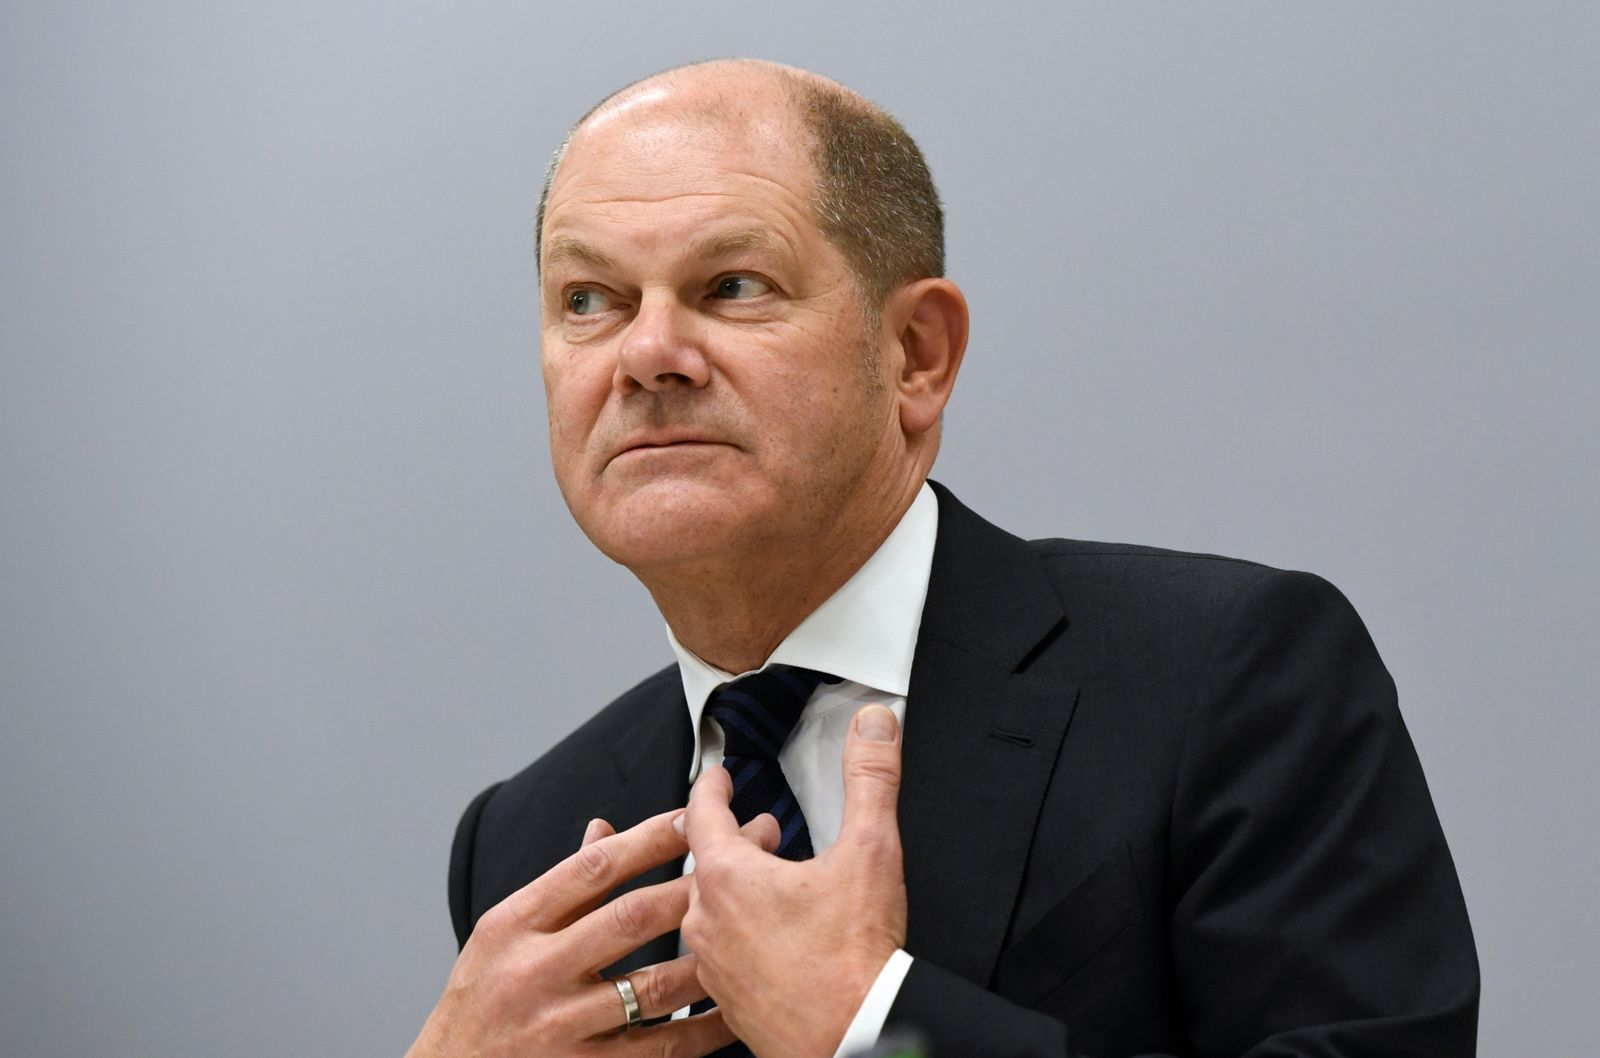 German Finance Minister Scholz speaks during an interview with Reuters in Berlin